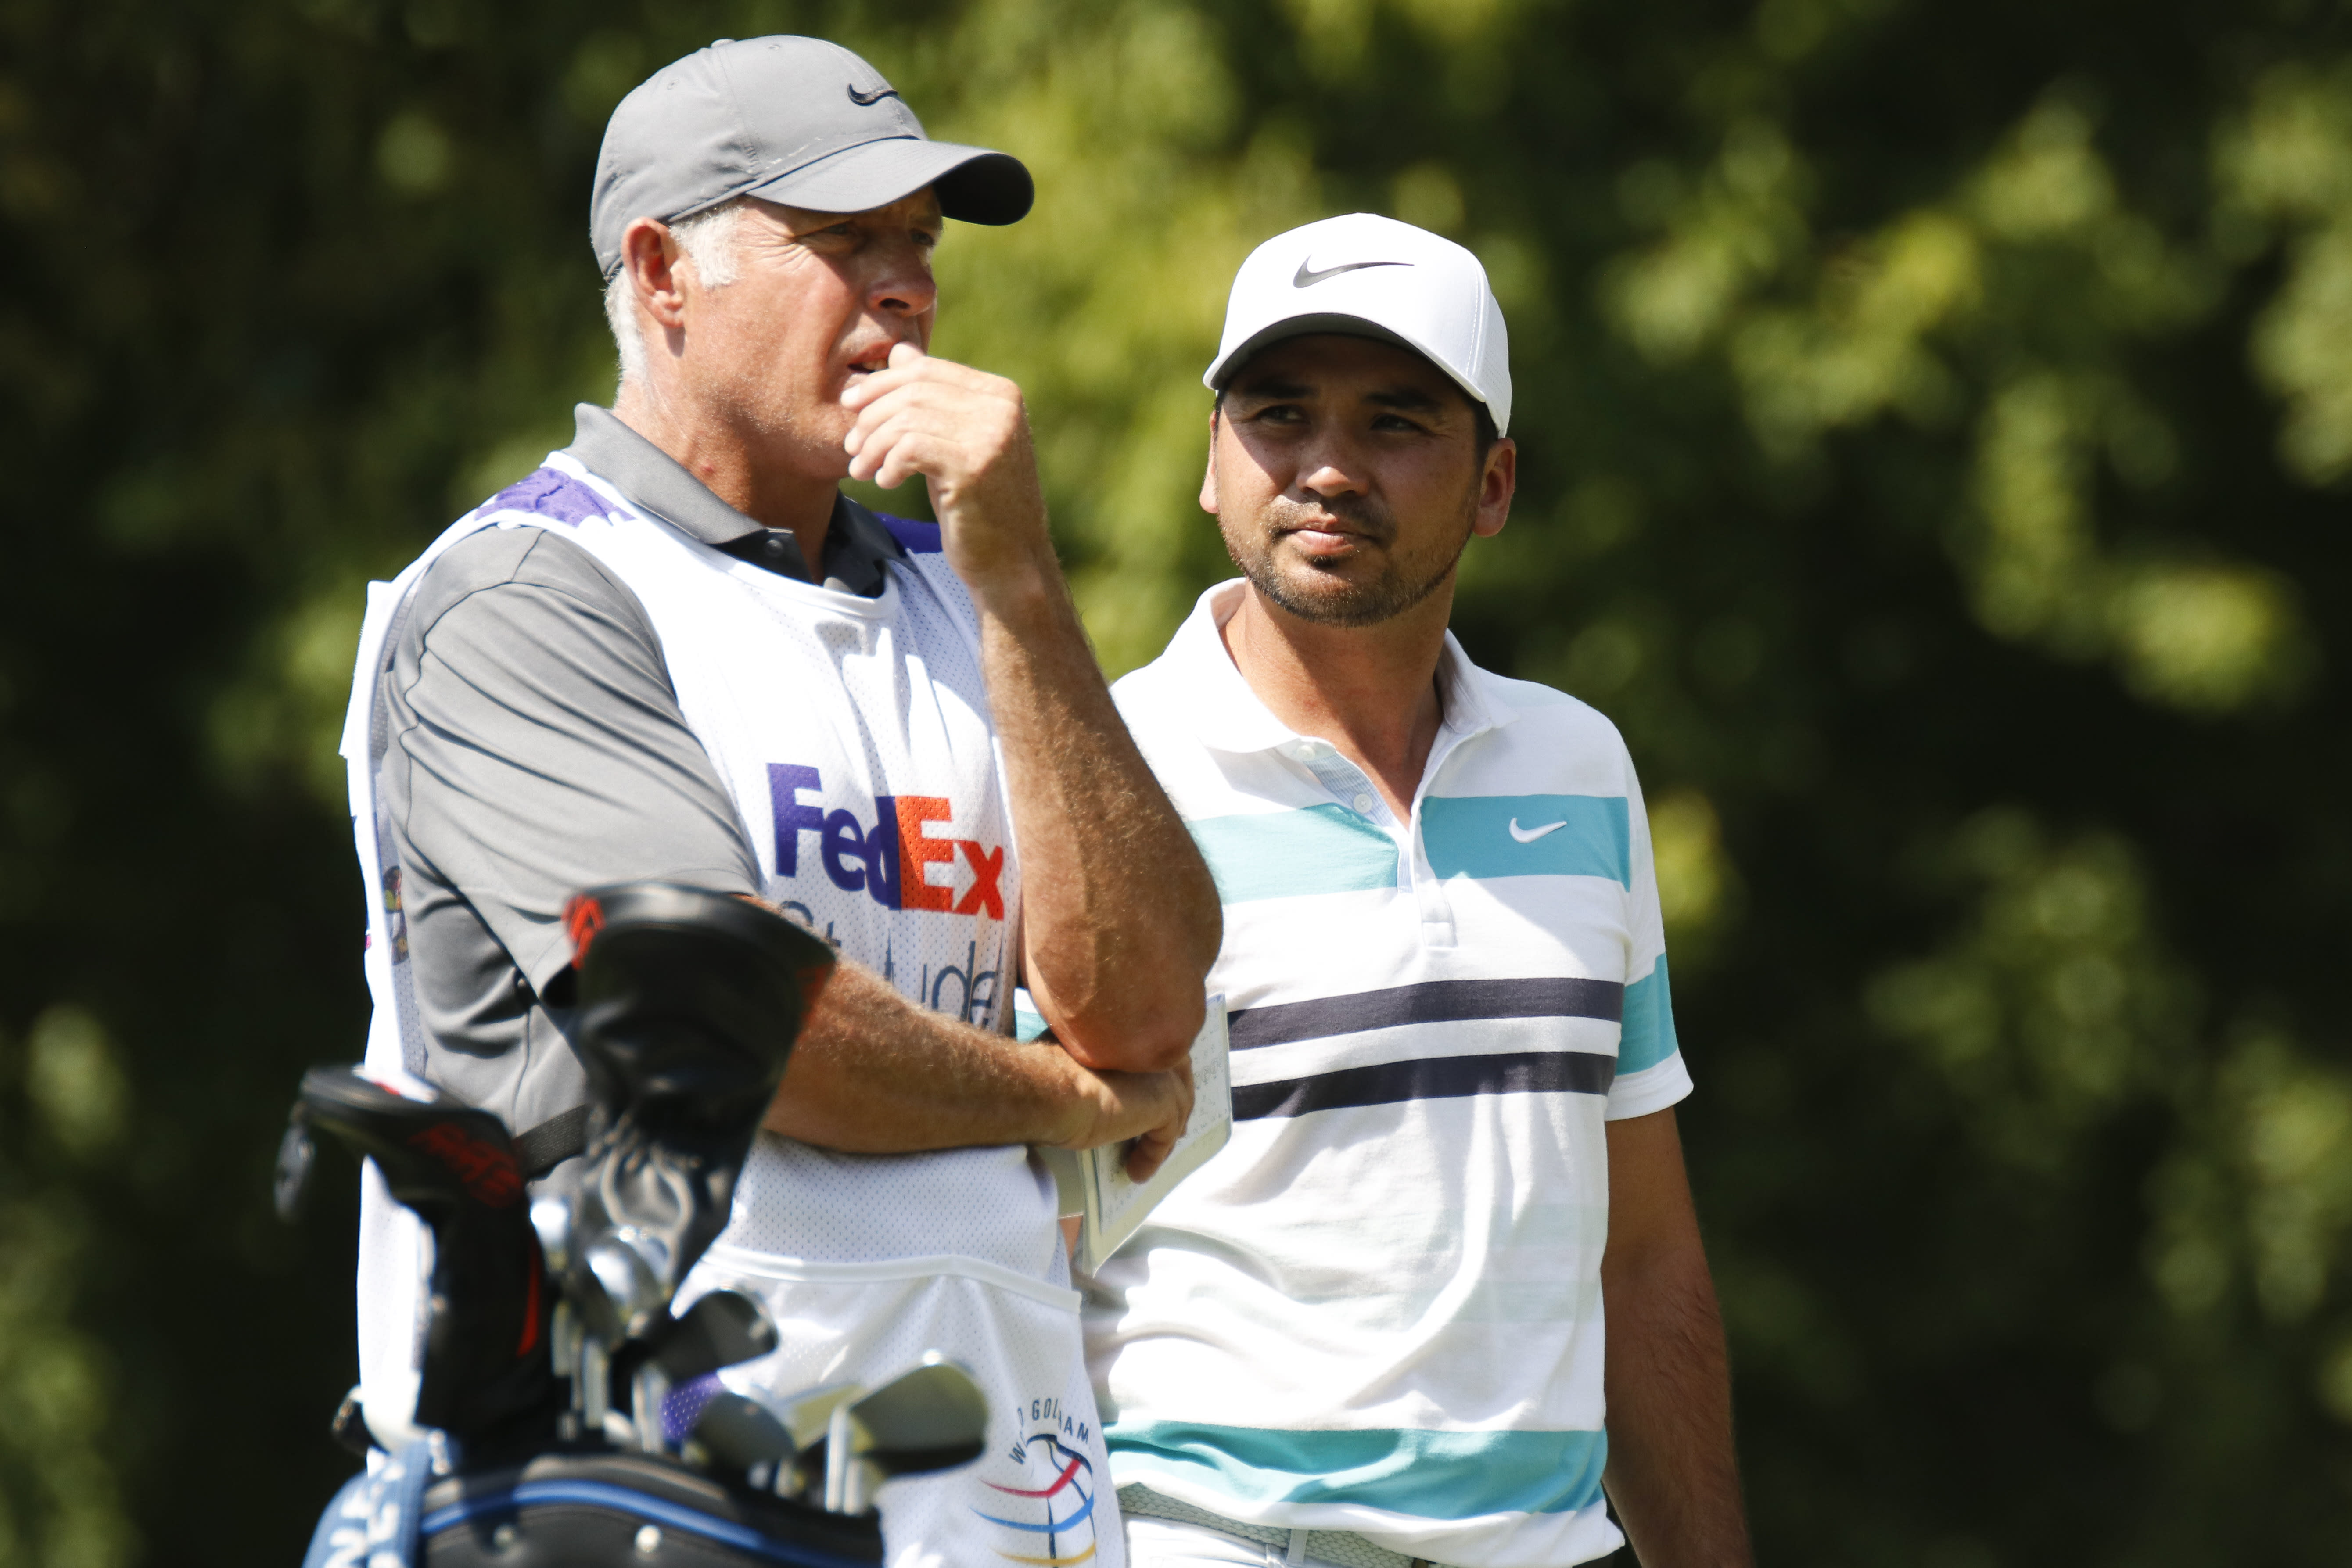 Jason Day splits with former Tiger Woods caddie Steve Williams after 6 events